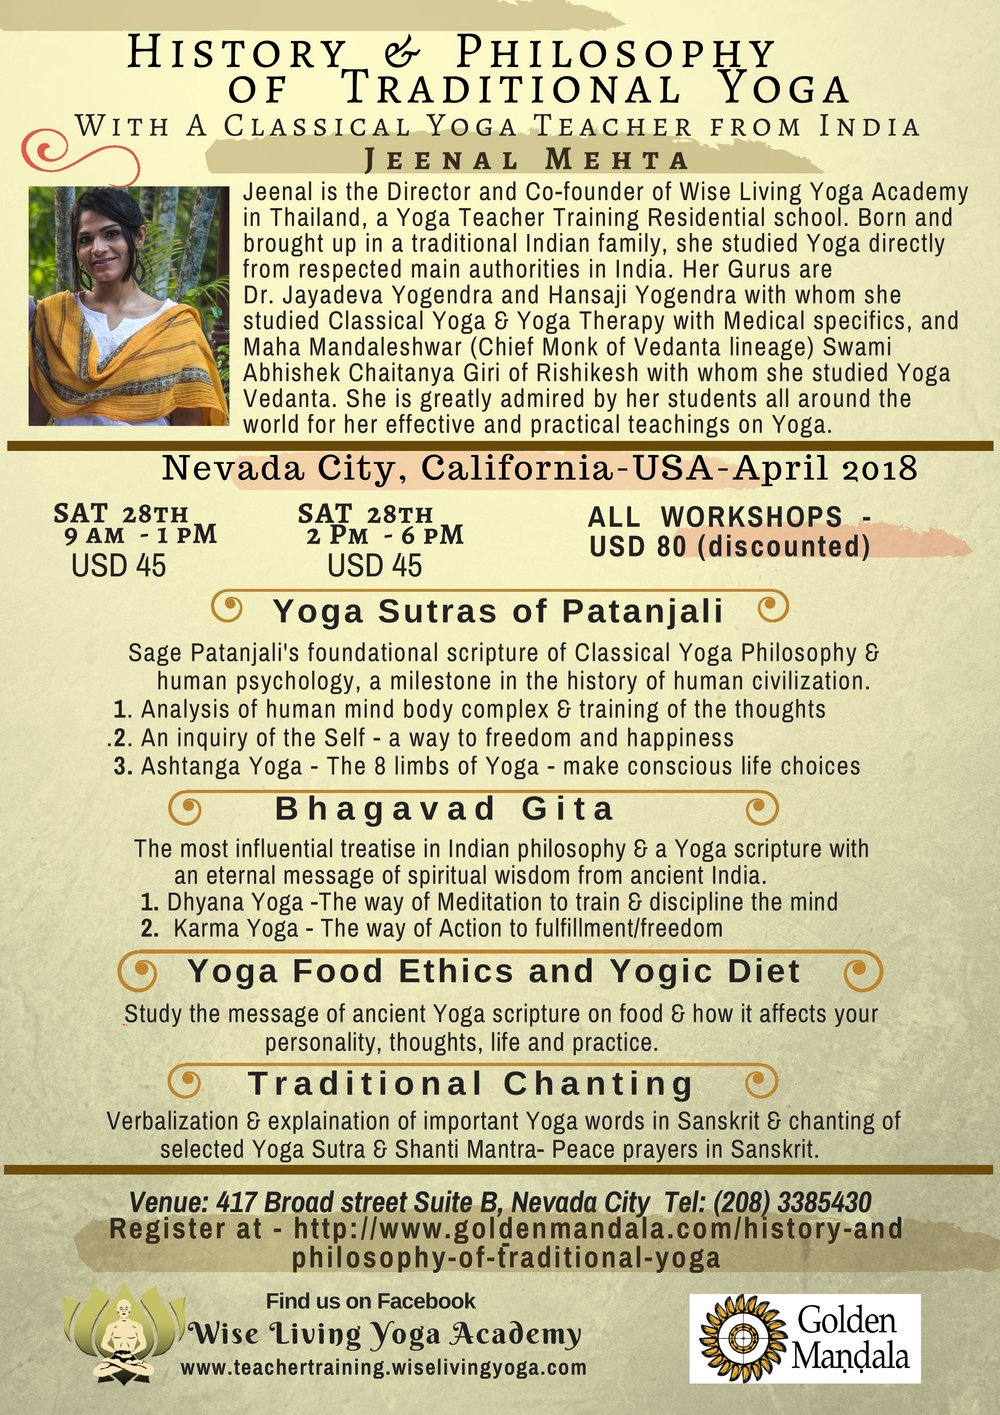 ~Pre-register Now~ - Register for Saturday Morning Lessons or All Day HereRegister for Saturday Afternoon Only HereRegister for Women's Health Class Sunday Morning HereRegister for Conscious Relating Sunday Afternoon HereFULL INFORMATION AT:http://www.goldenmandala.com/history-and-philosophy-of-traditional-yoga